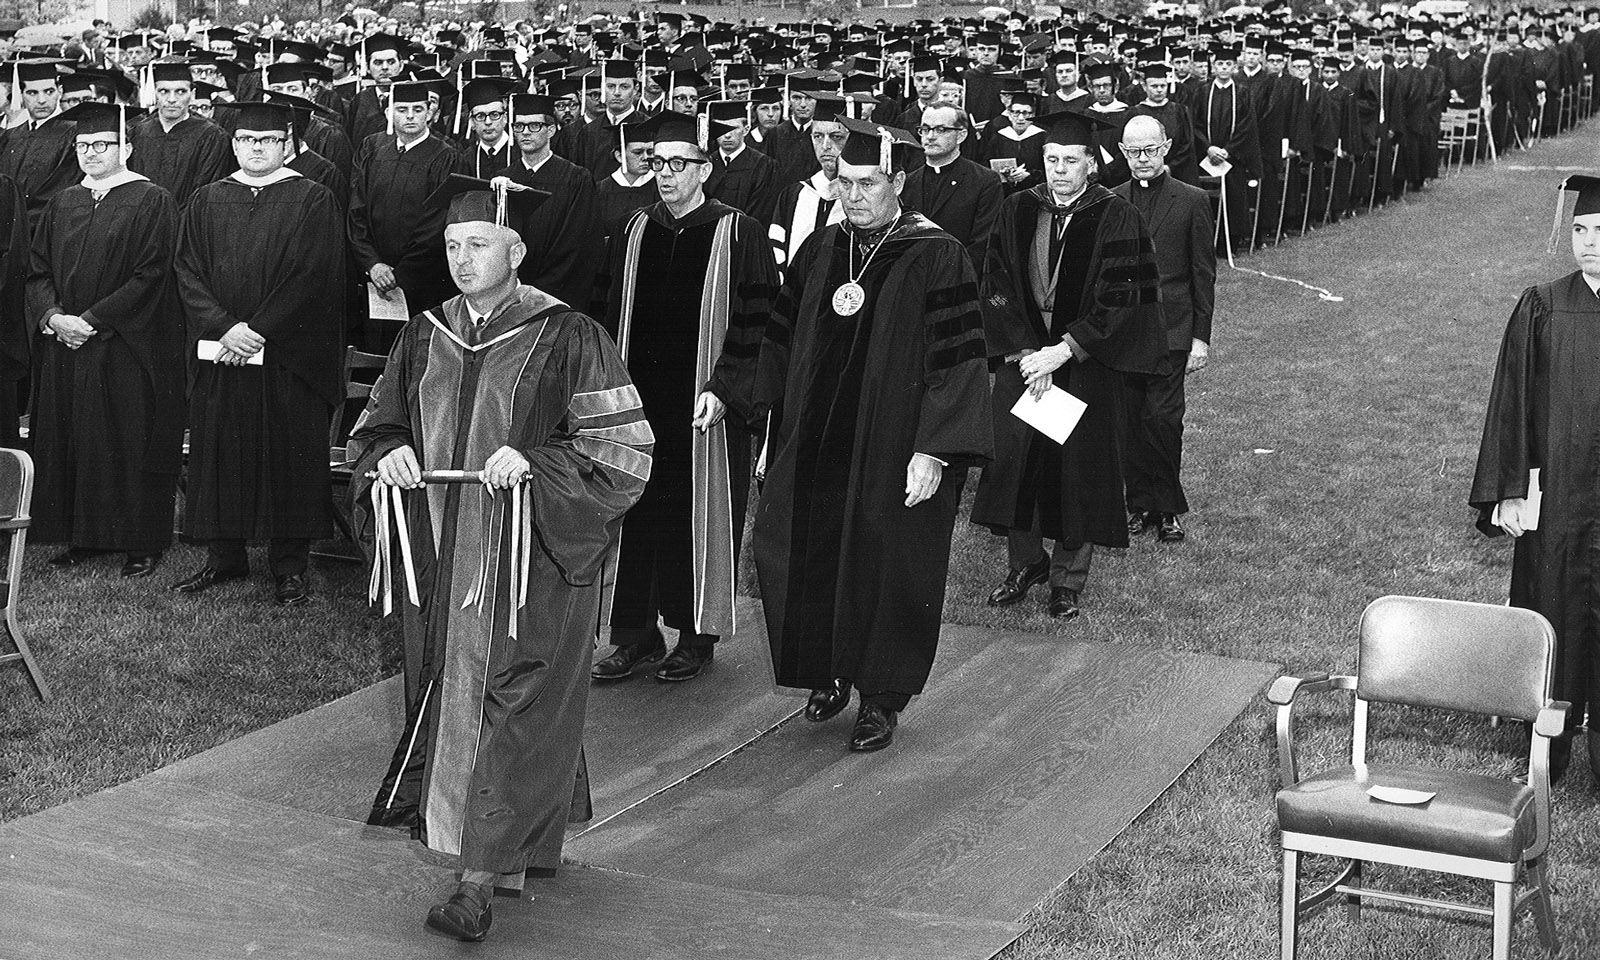 Former CPP President Robert Kramer walks to the stage during a Commencement ceremony in the late '60s or early '70s.